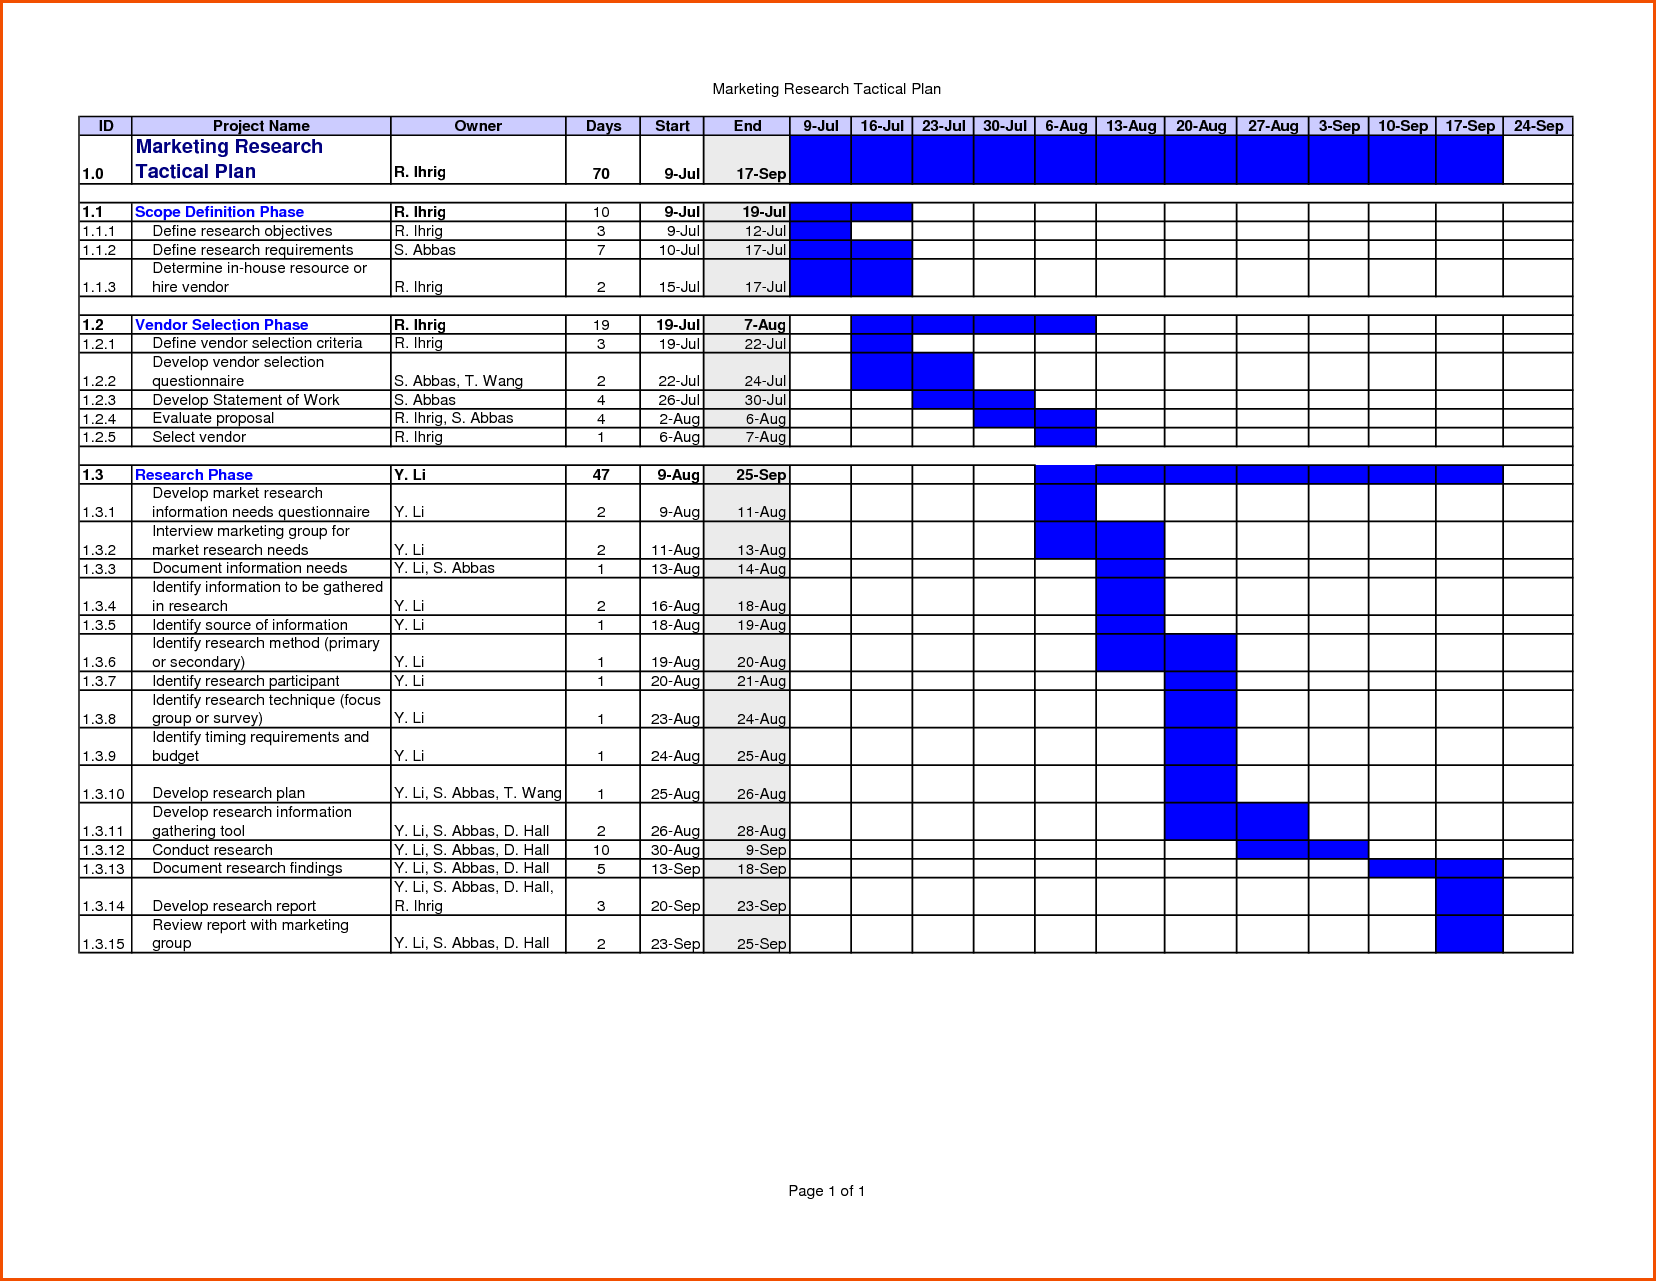 26 Images of FY Work Schedule Template Excel | diygreat.com